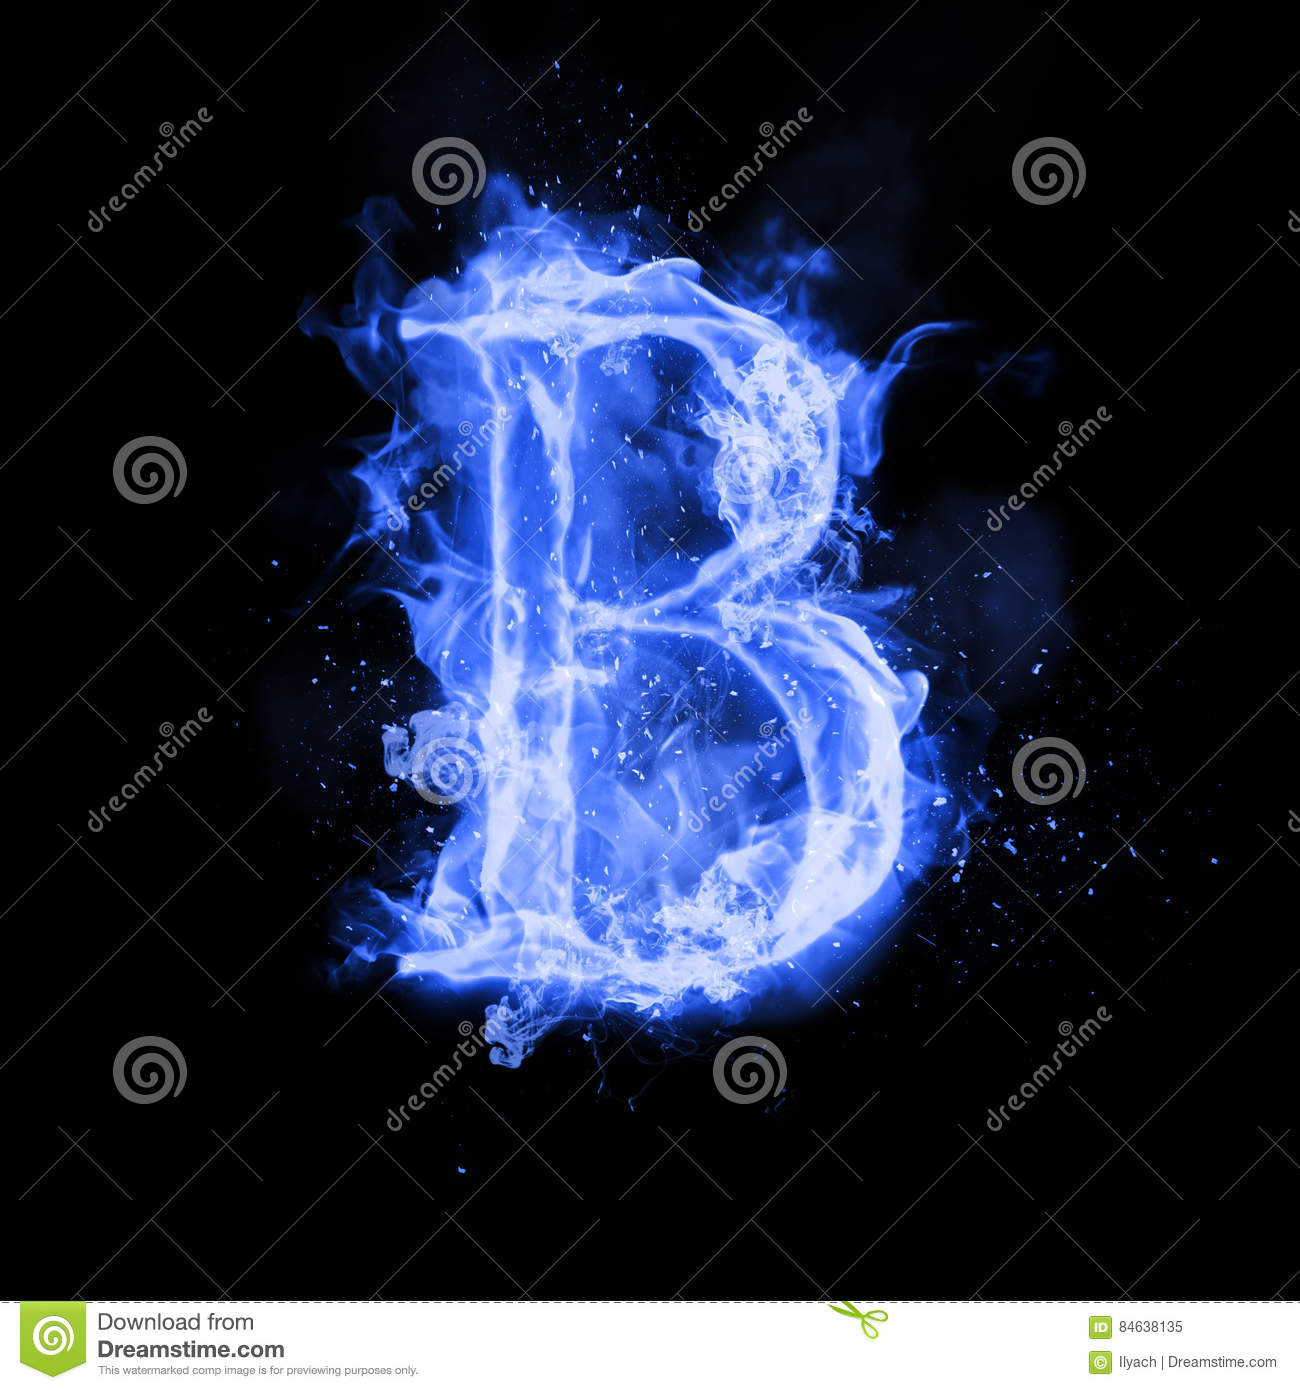 Fire letter b of burning flame light stock illustration fire letter b of burning flame light thecheapjerseys Choice Image